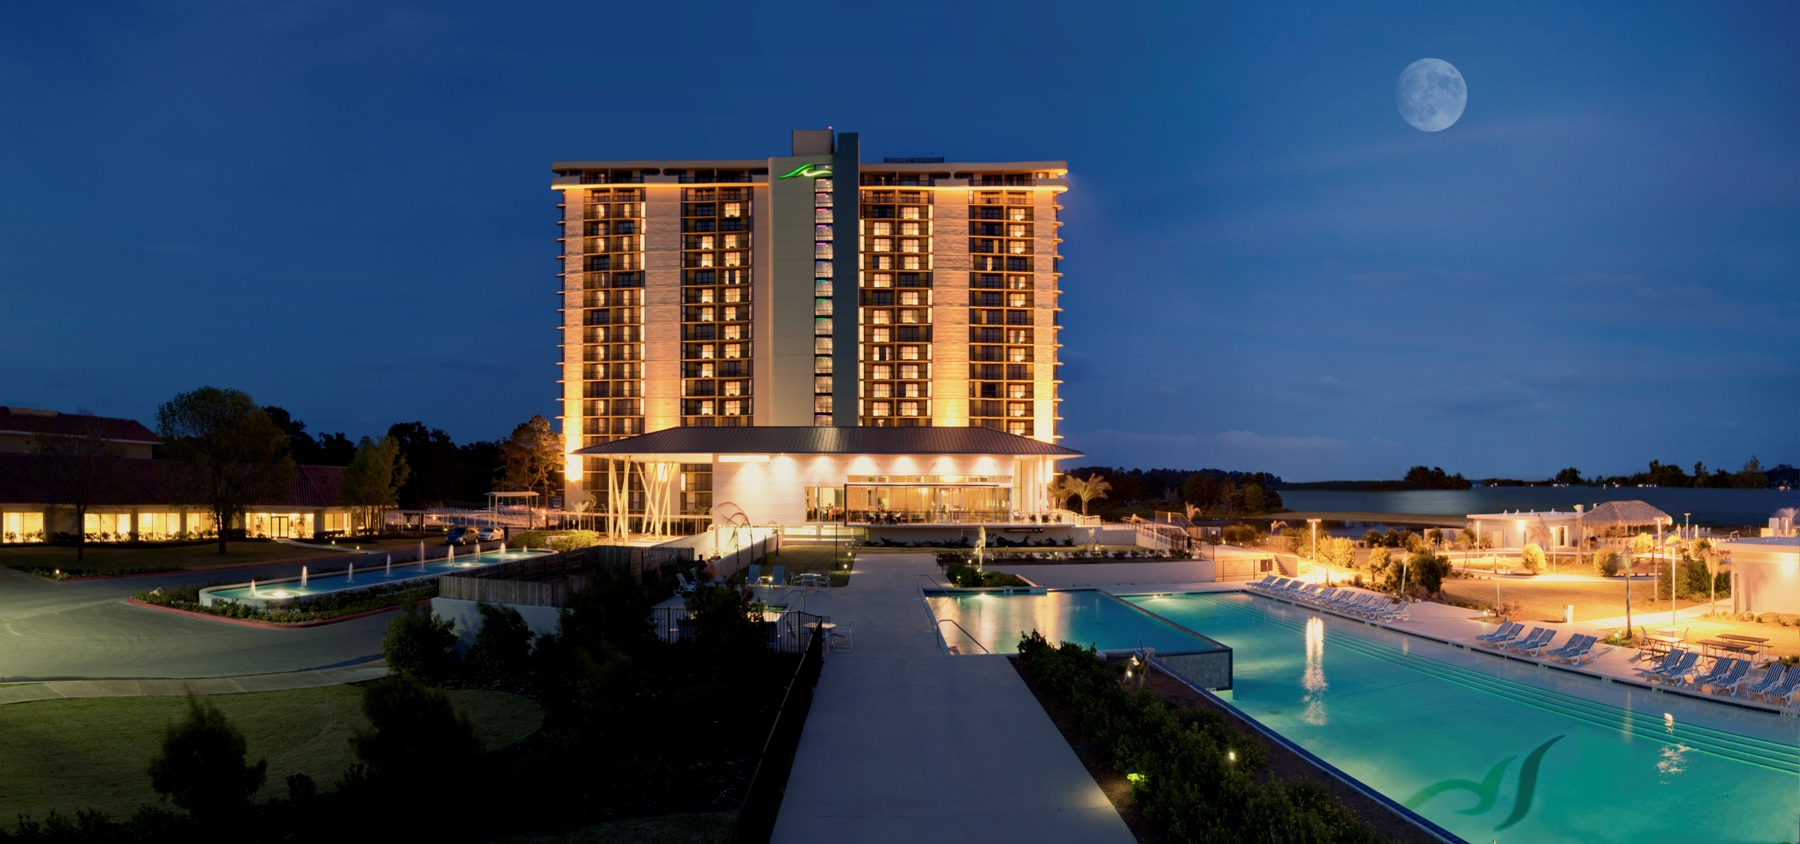 La Torretta Lake Resort And Spa Montgomery Tx